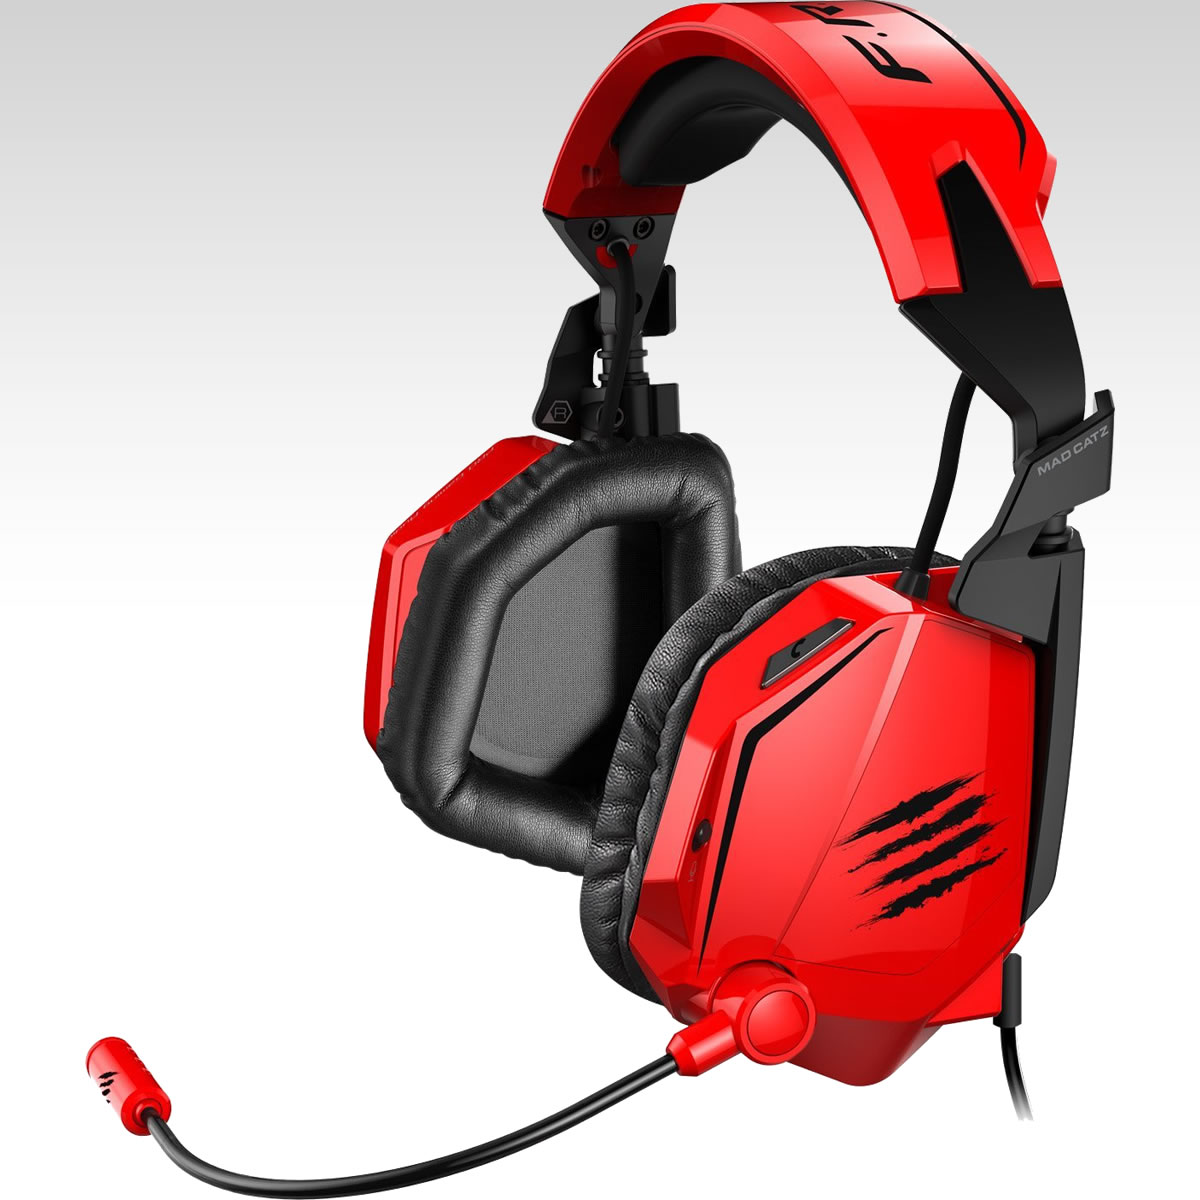 MAD CATZ FREQ TE Tournament Edition STEREO GAMING HEADSET - GLOSS RED (PC, MAC, MOBILE)